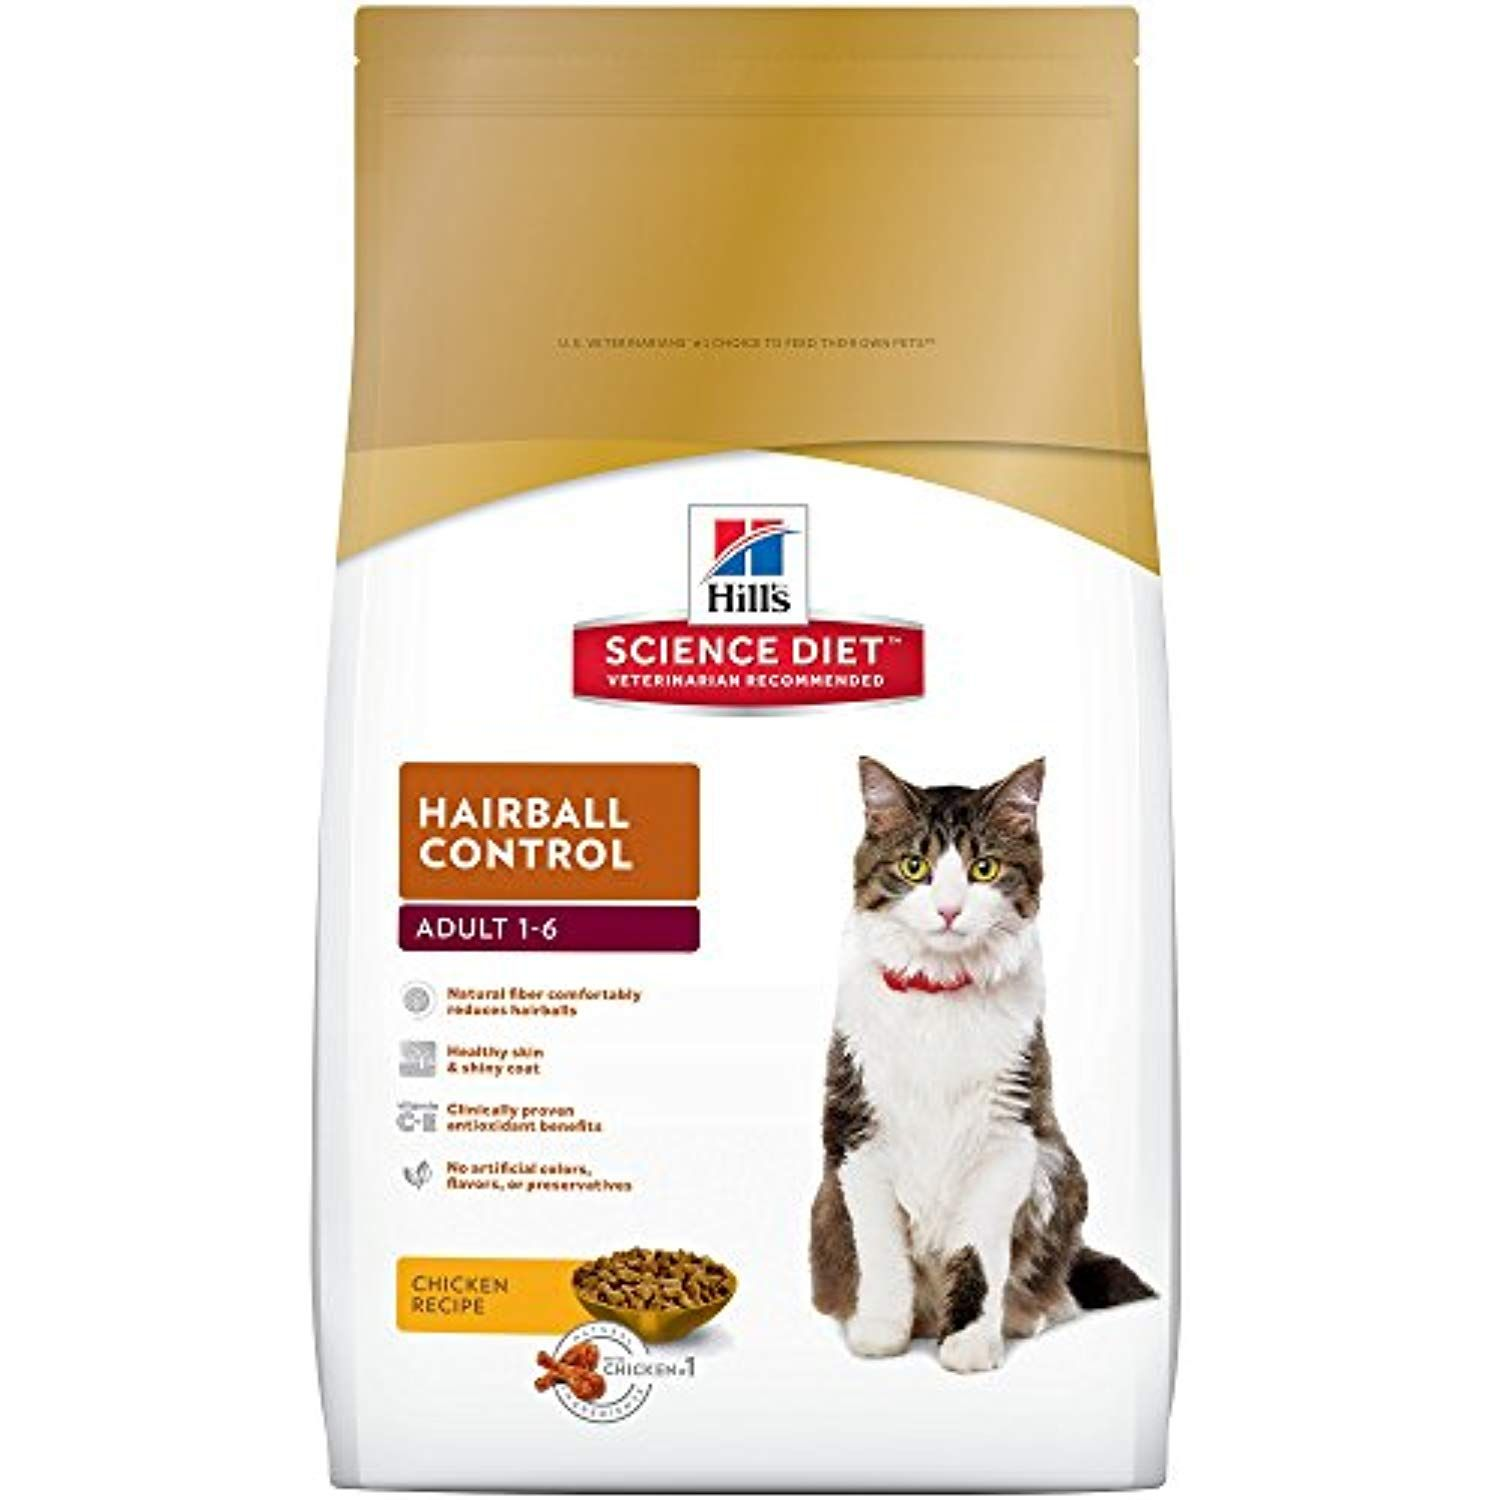 Hills science diet adult hairball control cat food